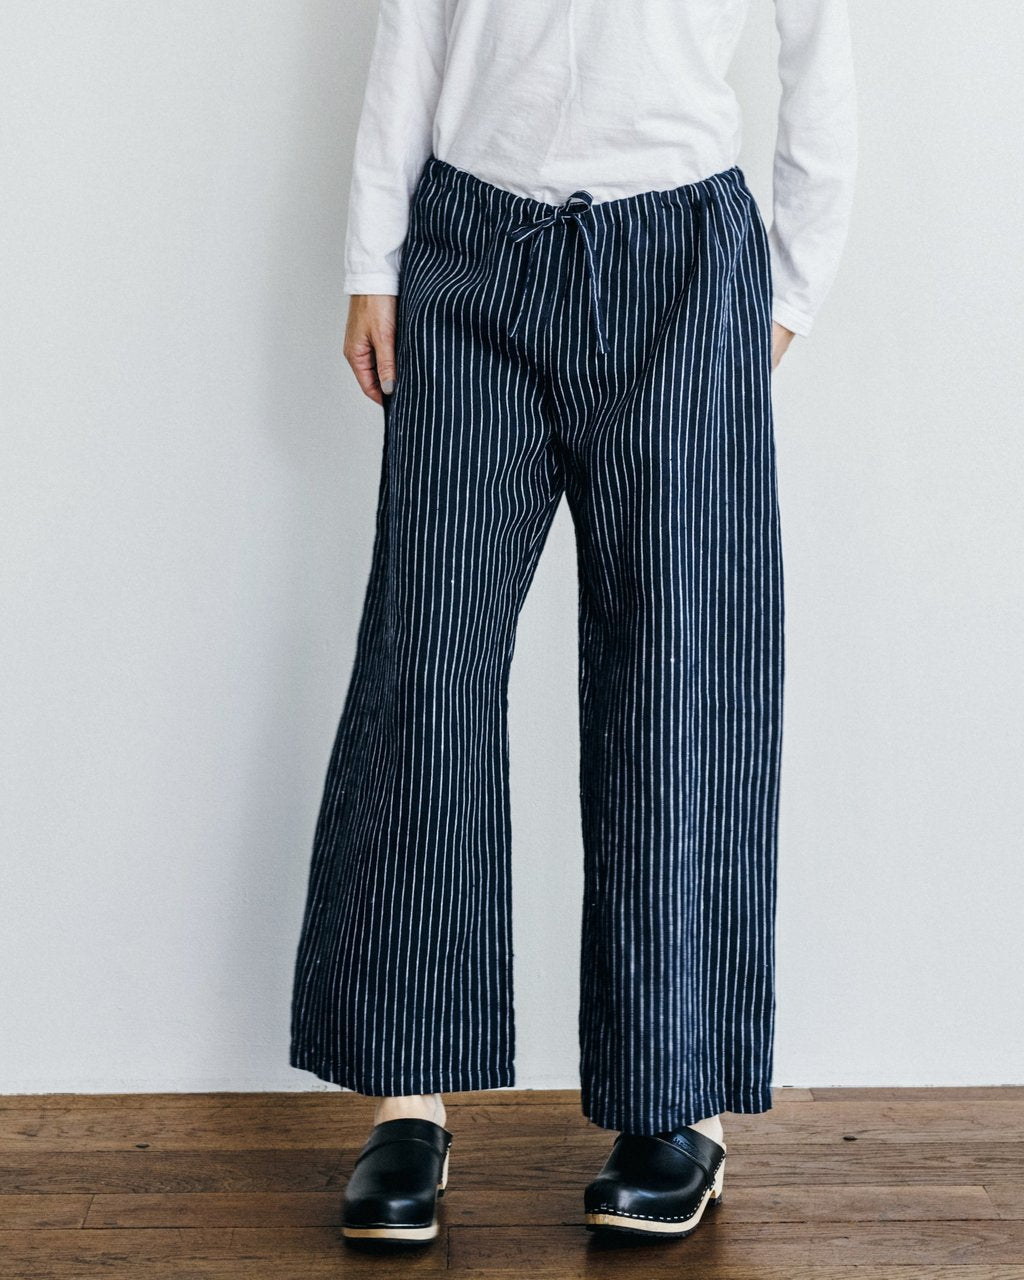 Linen Oise-Drawn String Pants George